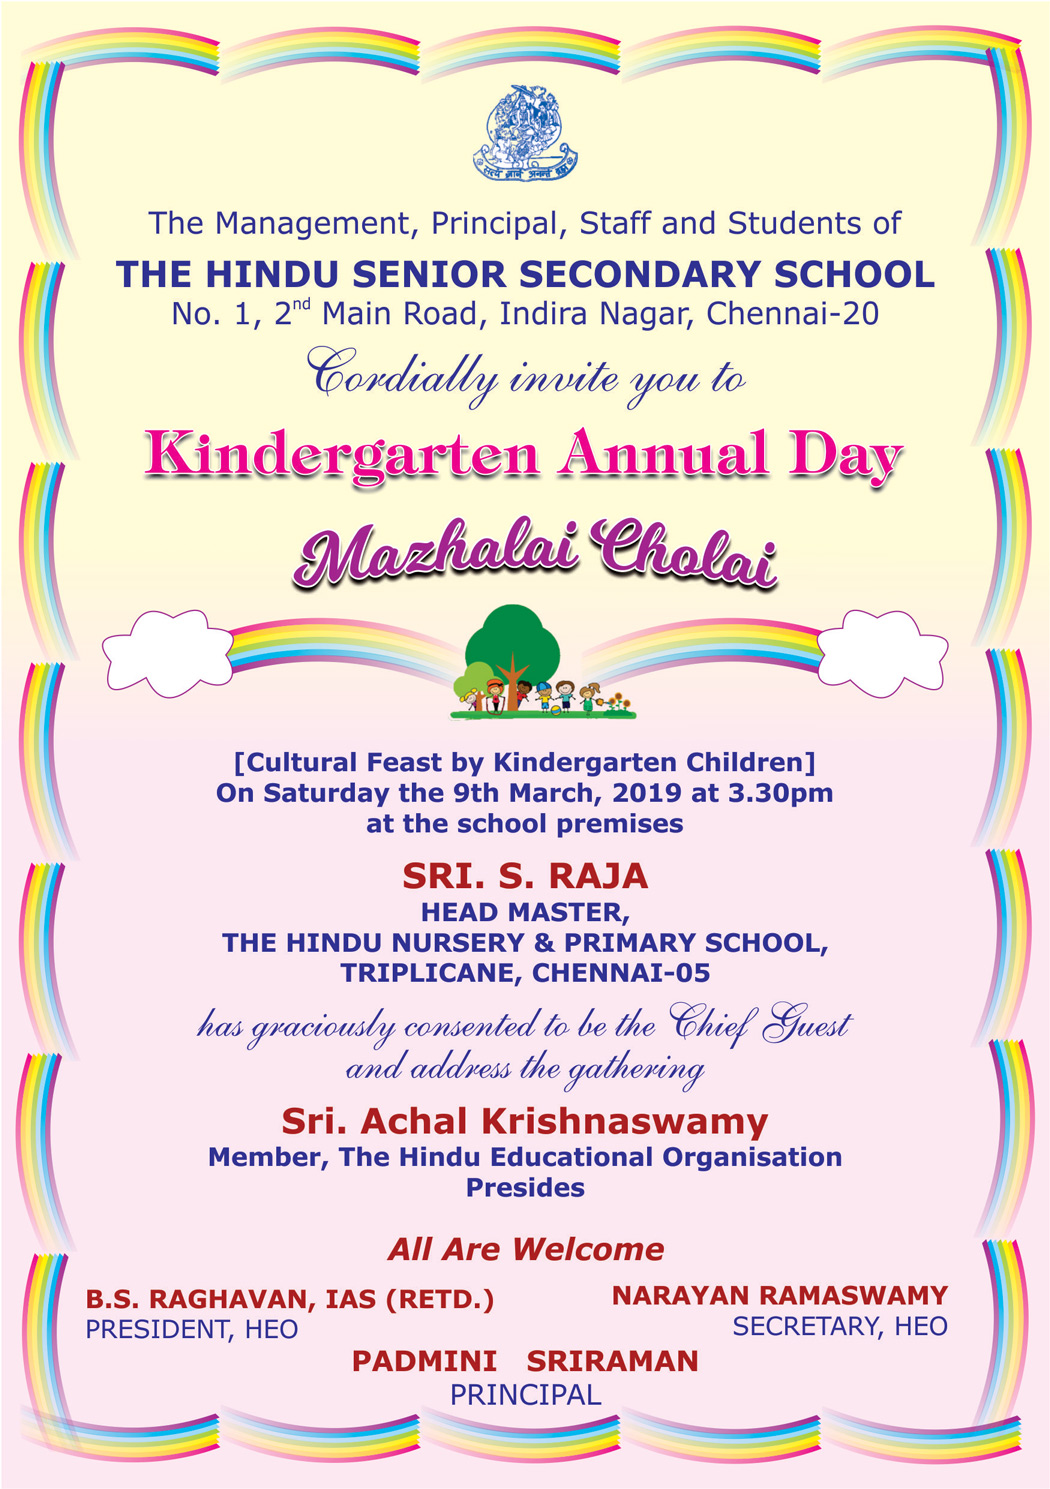 Mazhalai Cholai – KG Annual Day 2018-19